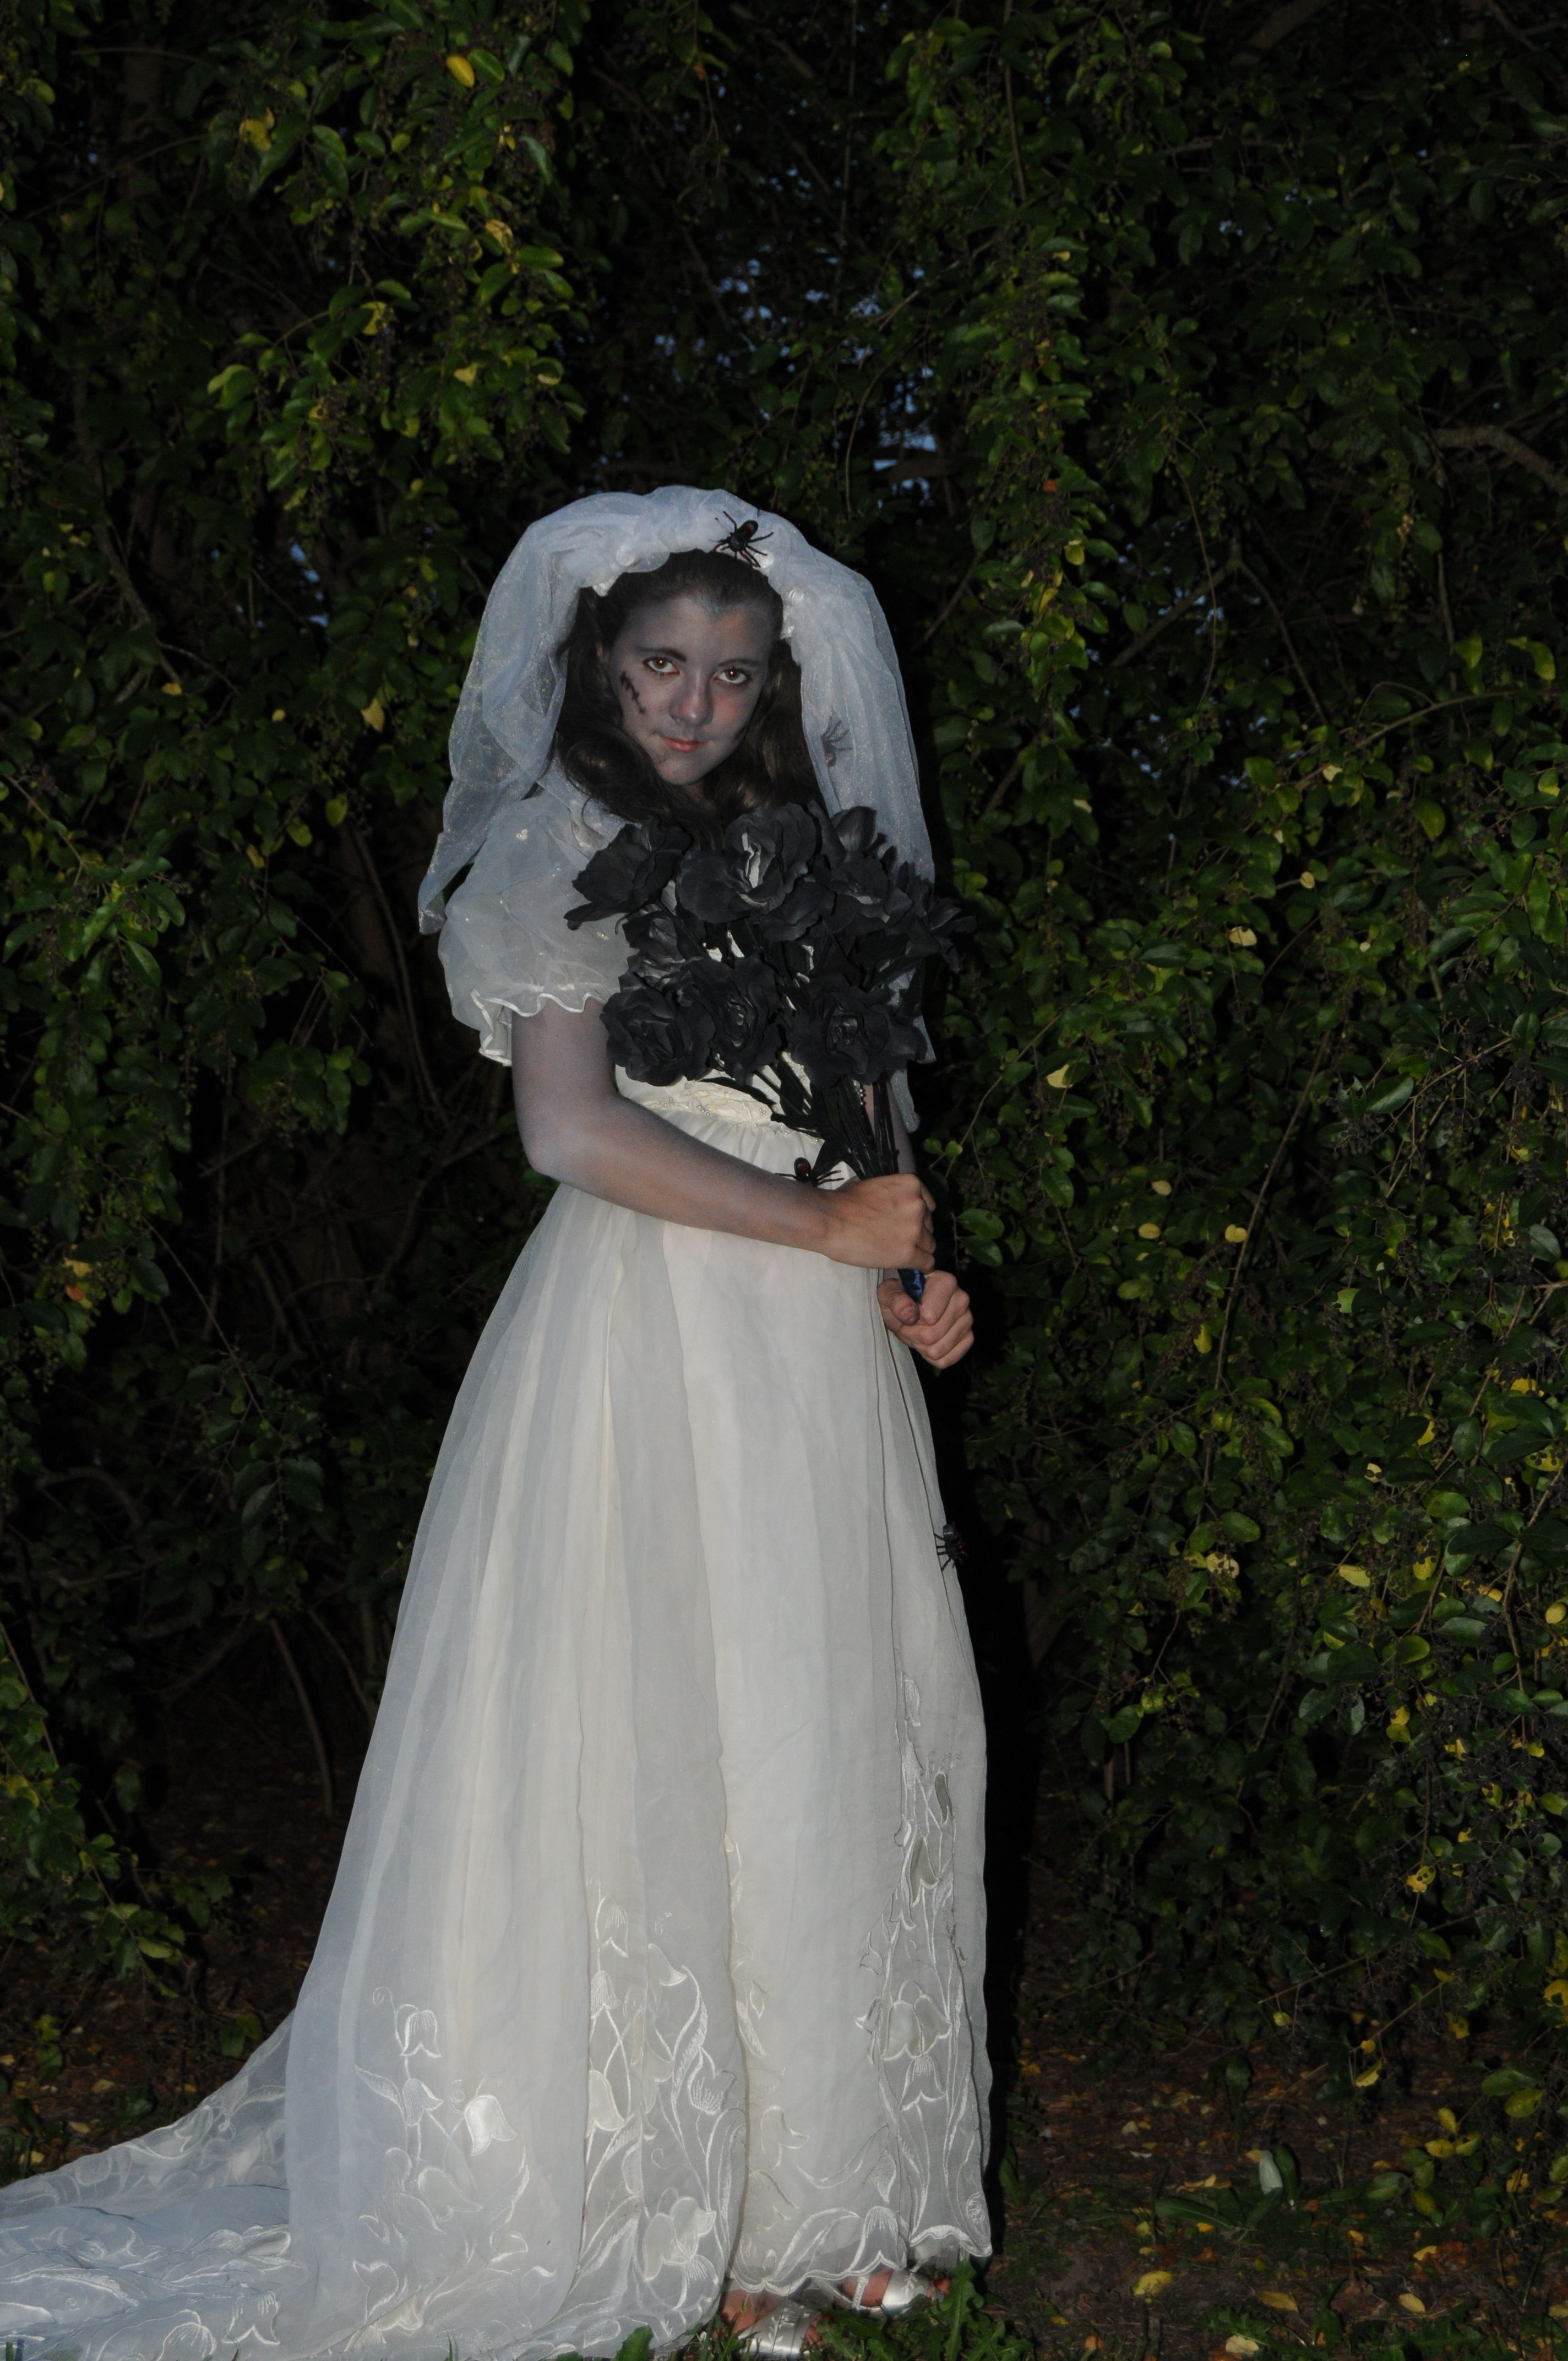 Thrift Store Wedding Dress And Shoes Can Find Free Or Very Inexpensive Dresses On Craigslist Too Bachelorette Veil From The Party